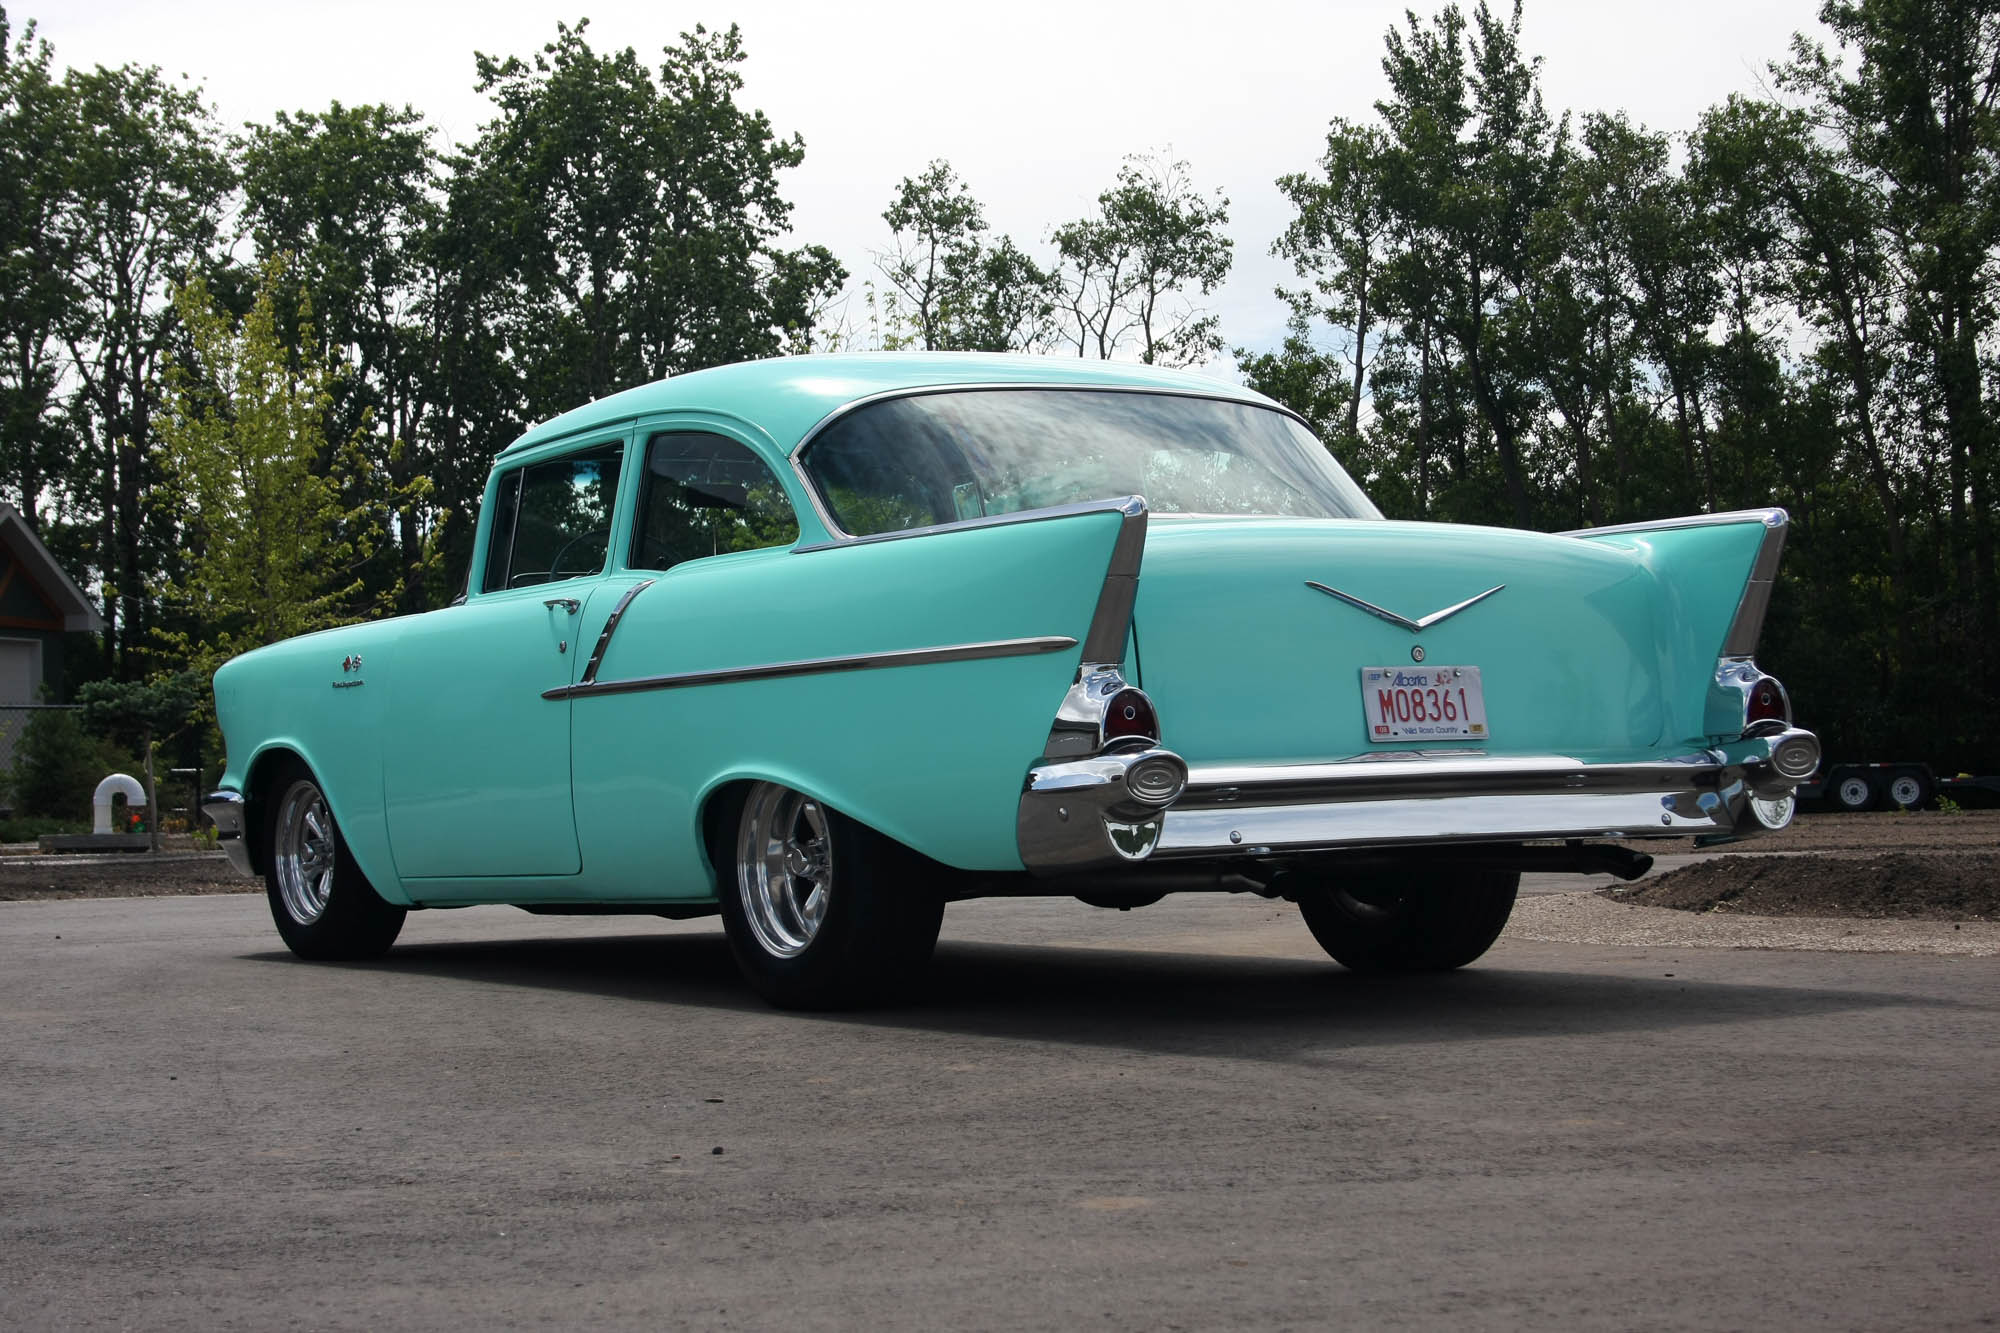 1957 Chevy Coupe - Sold - The Iron Garage